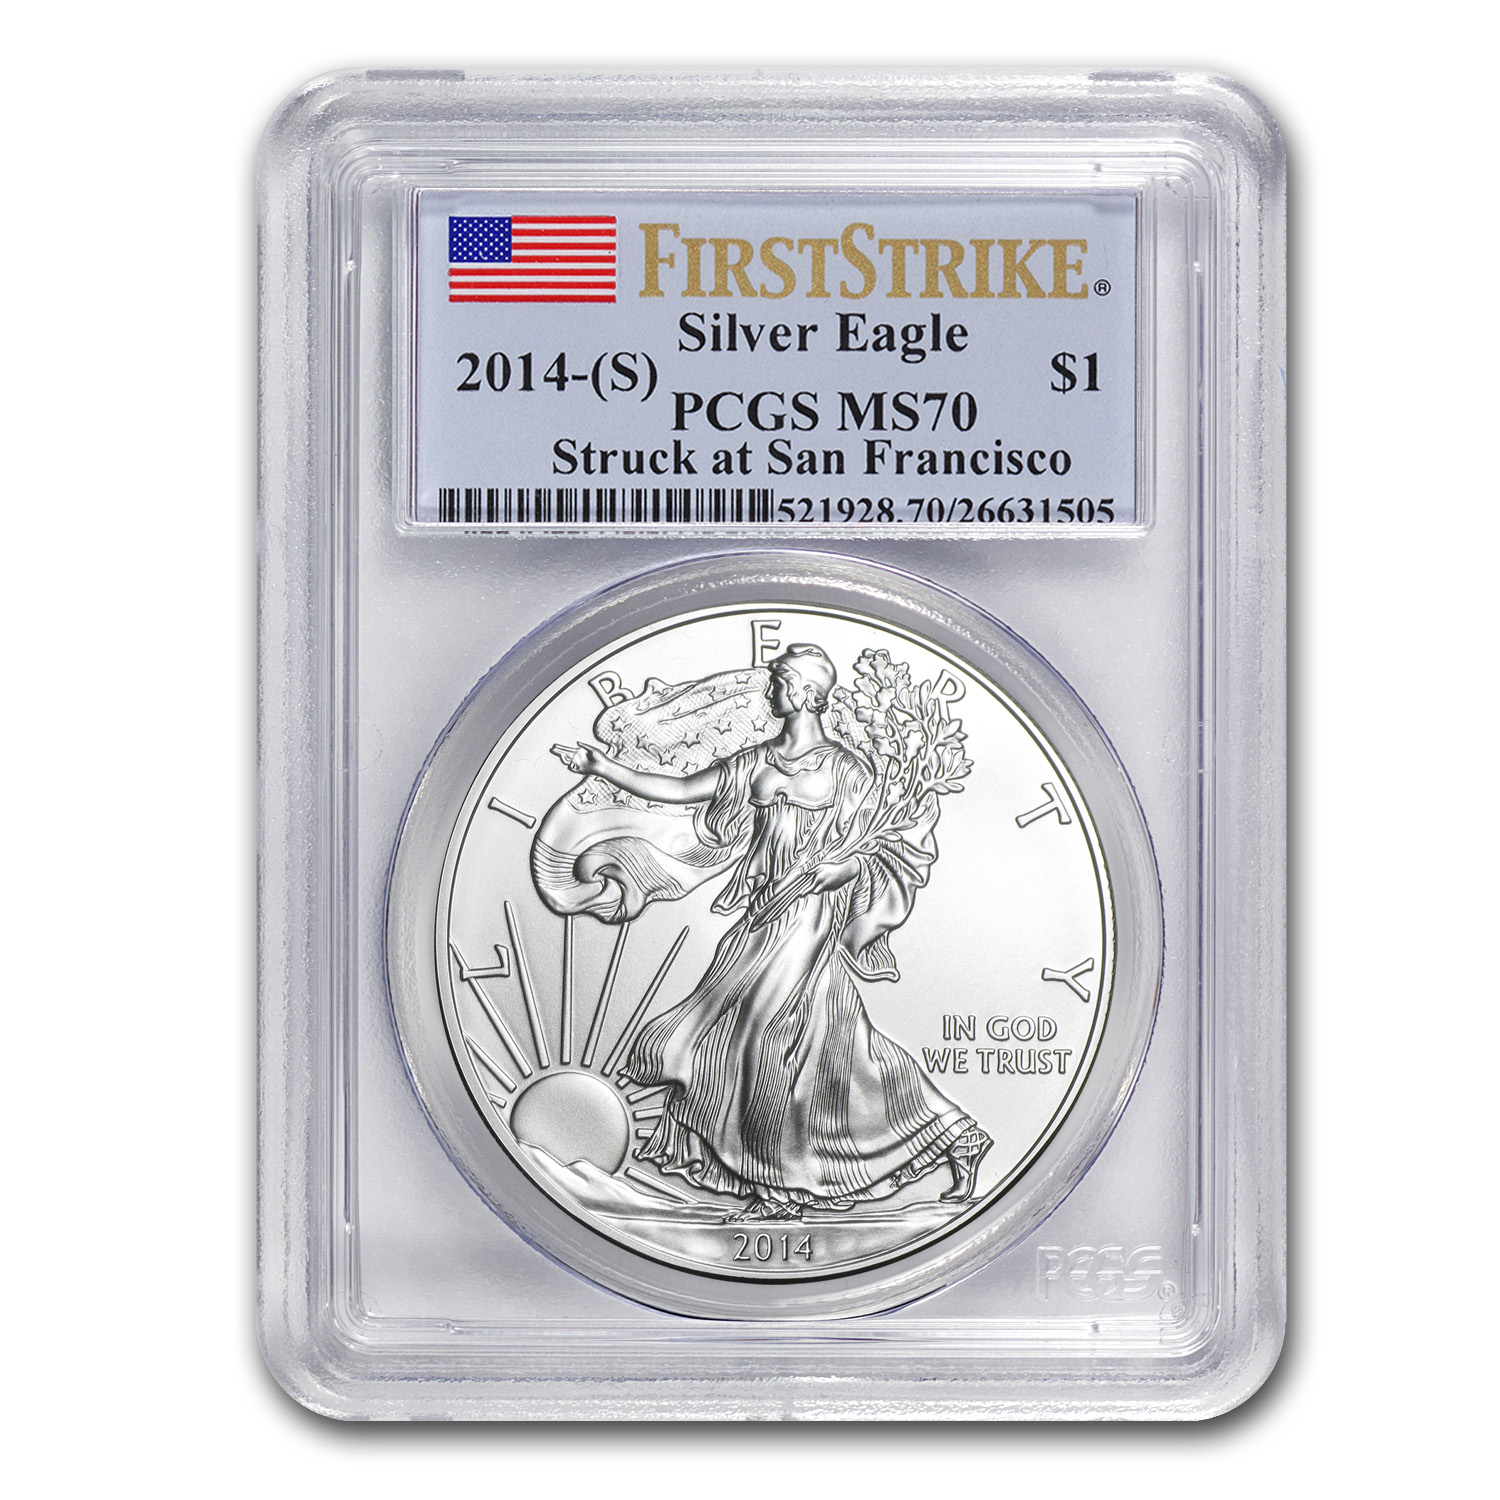 2014 (S) Silver American Eagle MS-70 PCGS (First Strike)